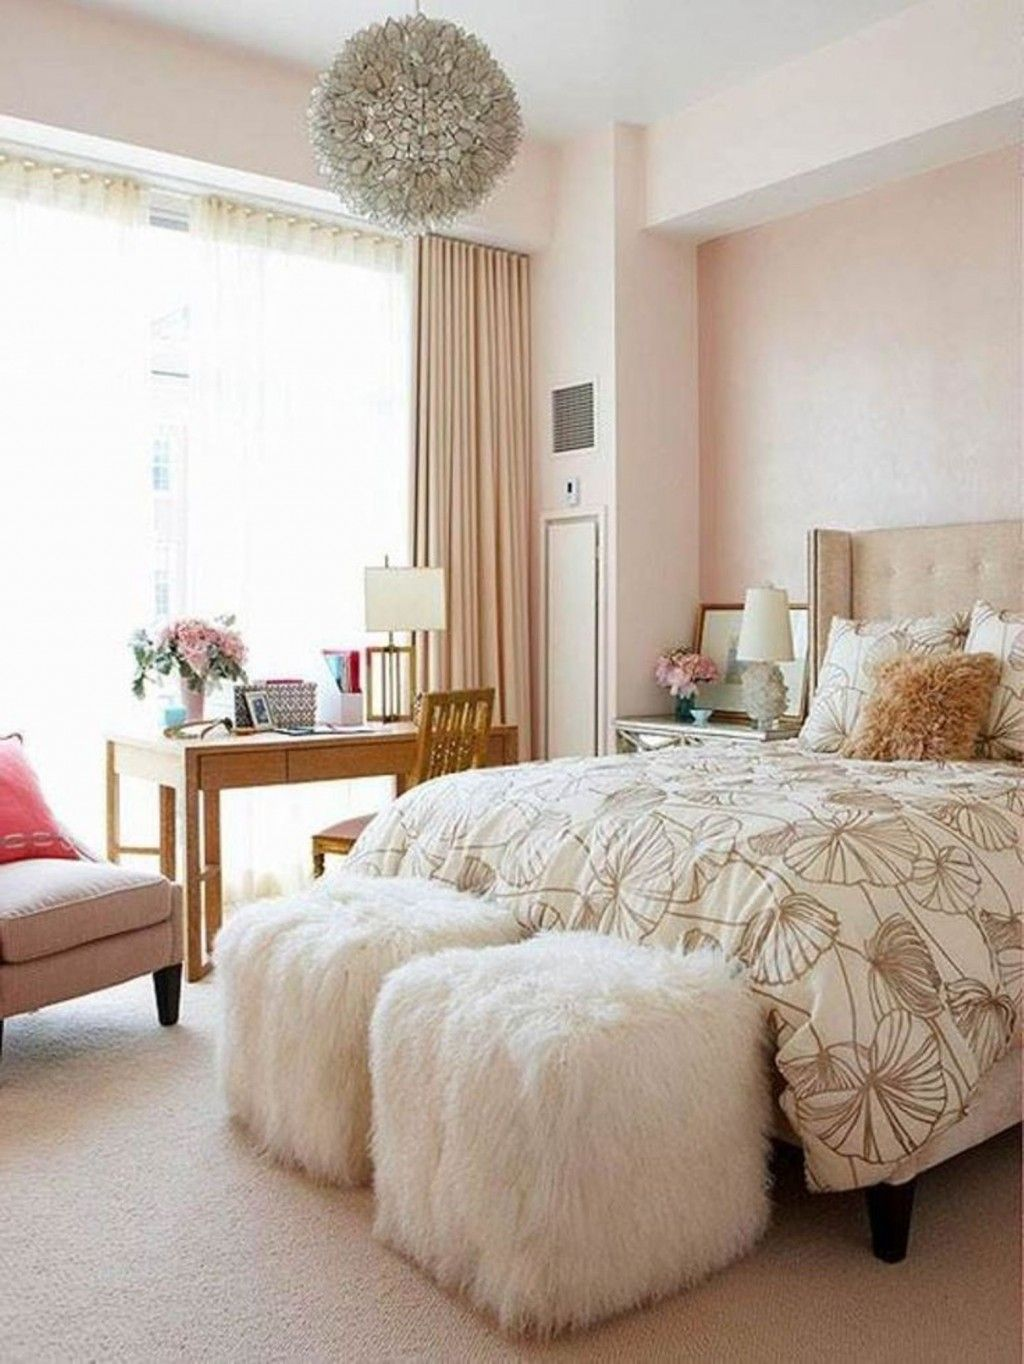 o fancy gallery bedroom ideas for young adults bedroom. Black Bedroom Furniture Sets. Home Design Ideas